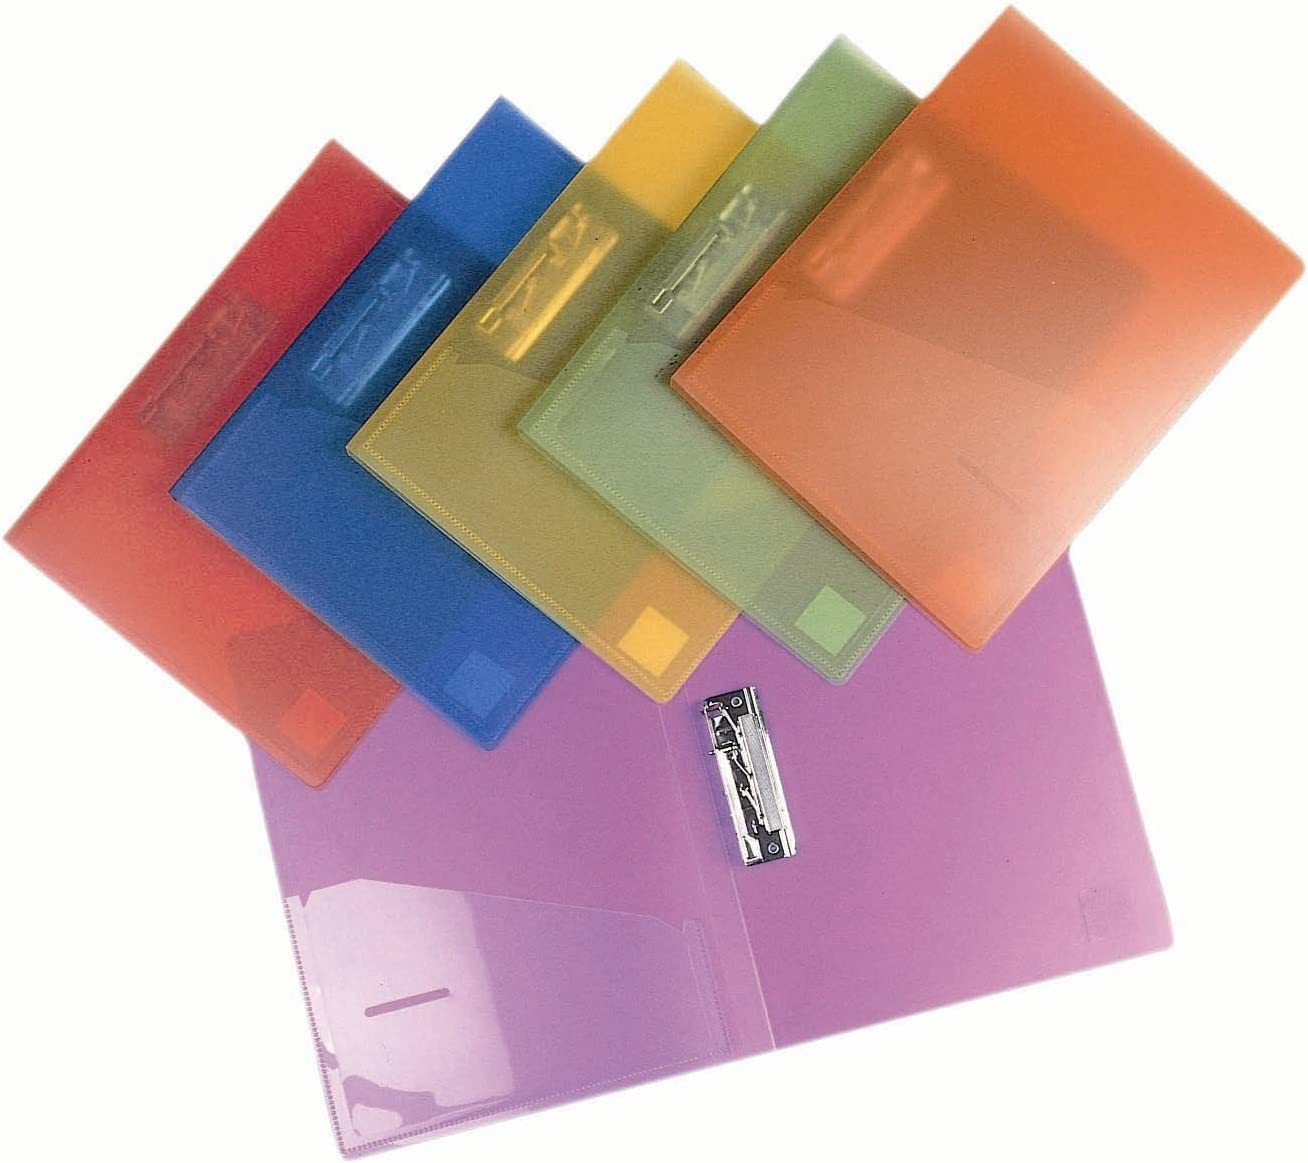 Filexec 6192, Clamp Binder, Frosted, Set of 6, 6 Assorted Colors Blueberry, Strawberry, Grape, Lime, Lemon, Tangerine (50028-6192)